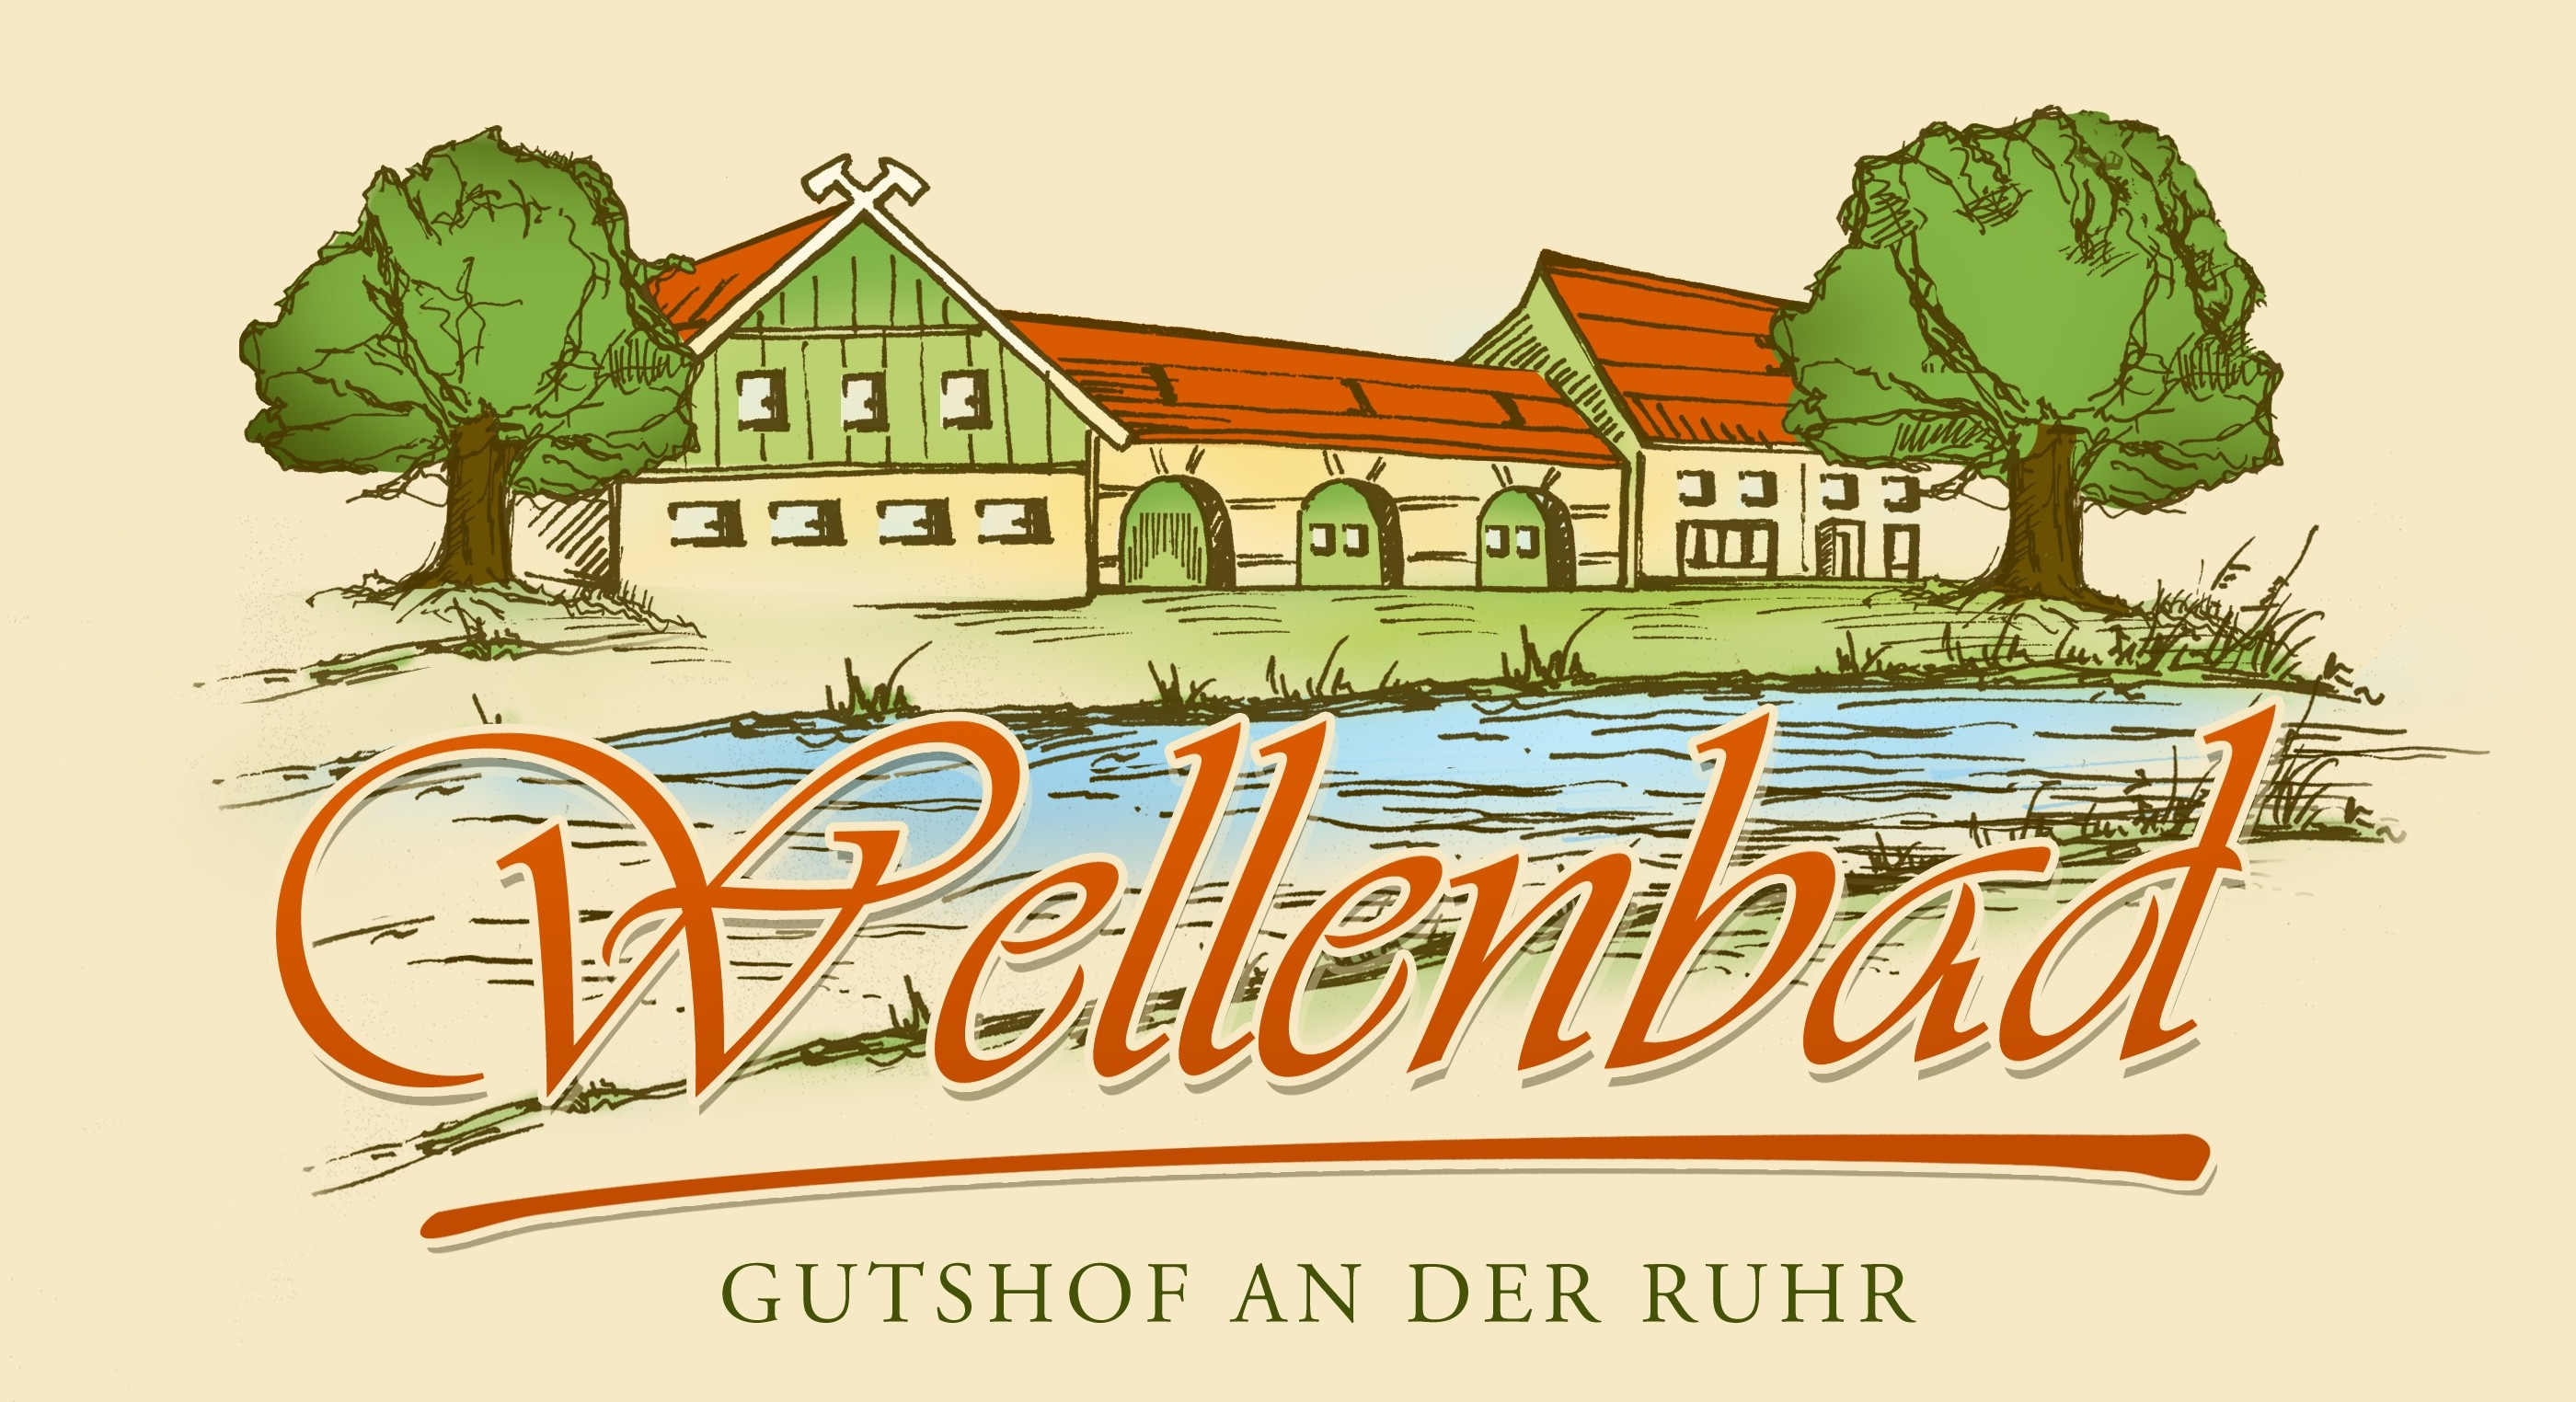 Hotel & Restaurant Wellenbad and der Ruhr